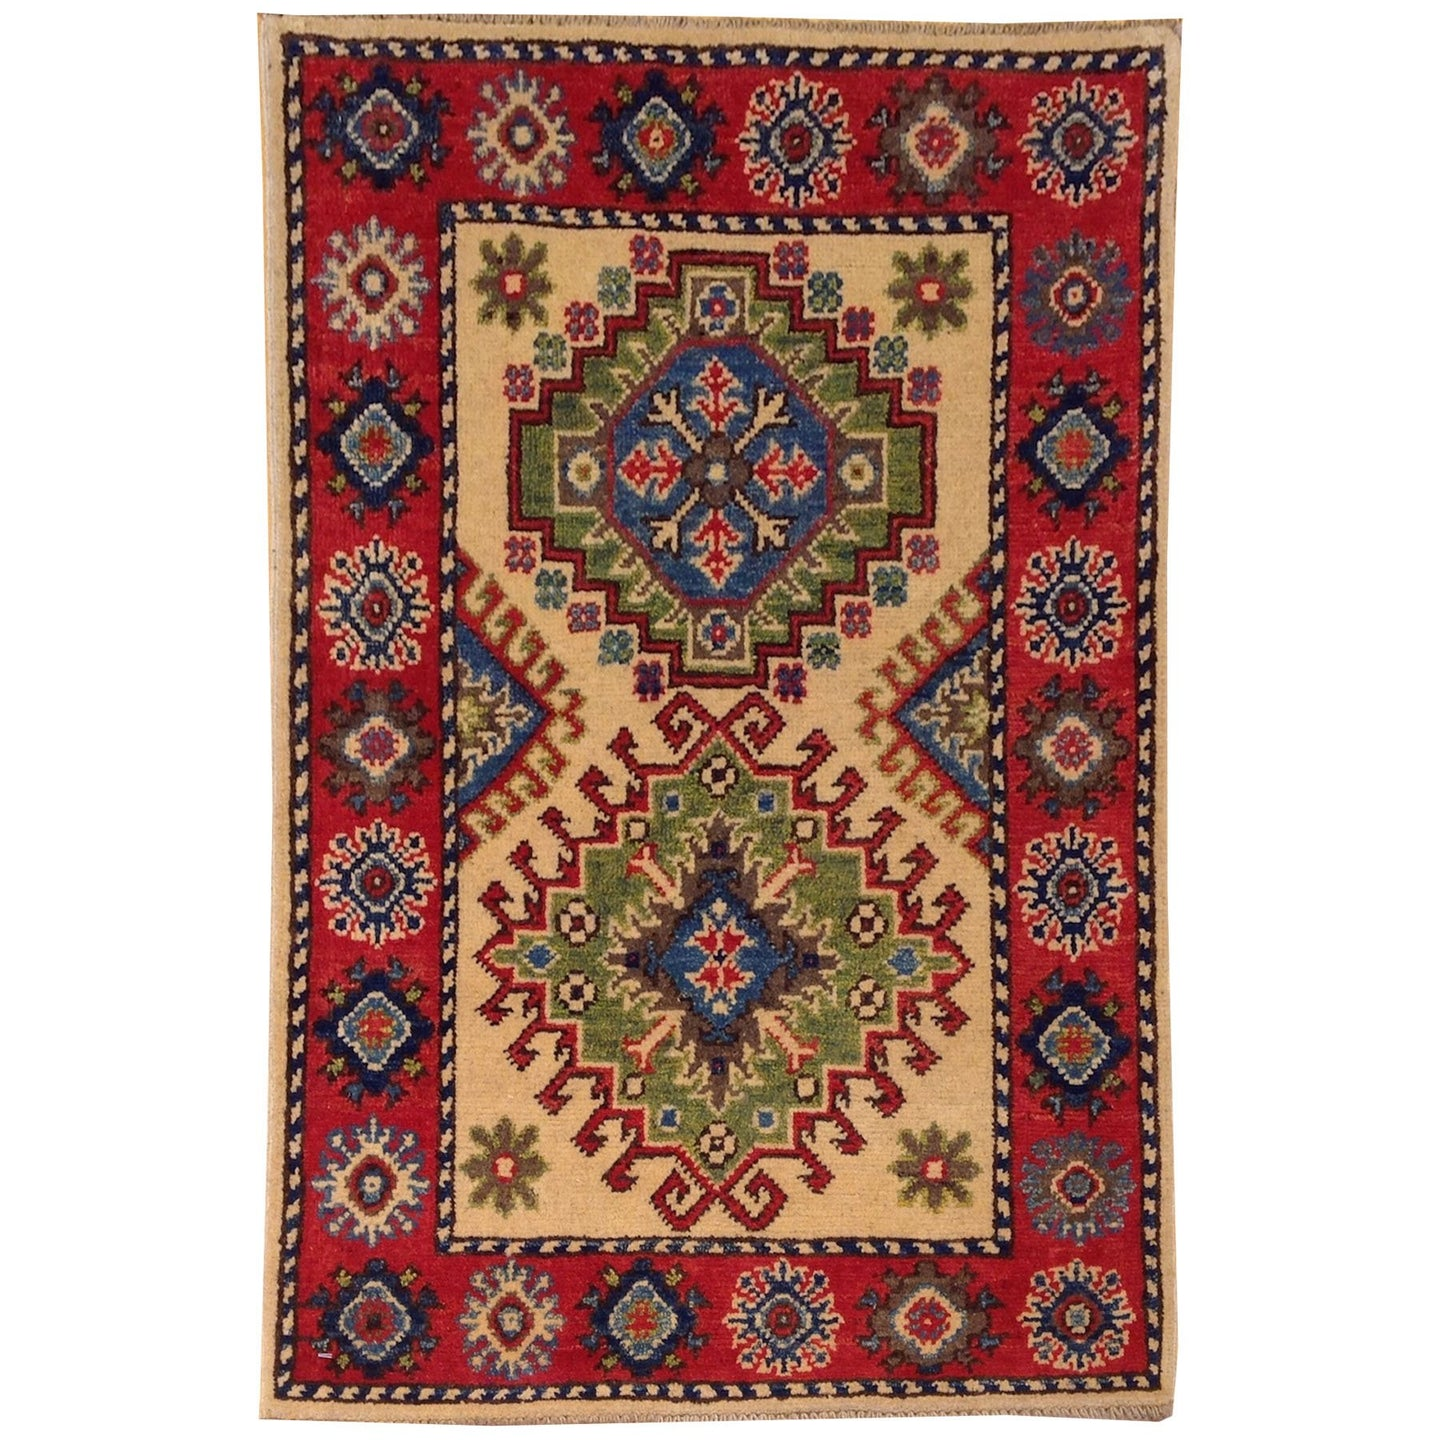 Oriental rugs, hand-knotted carpets, sustainable rugs, classic world oriental rugs, handmade, United States, interior design,  Brral-3537